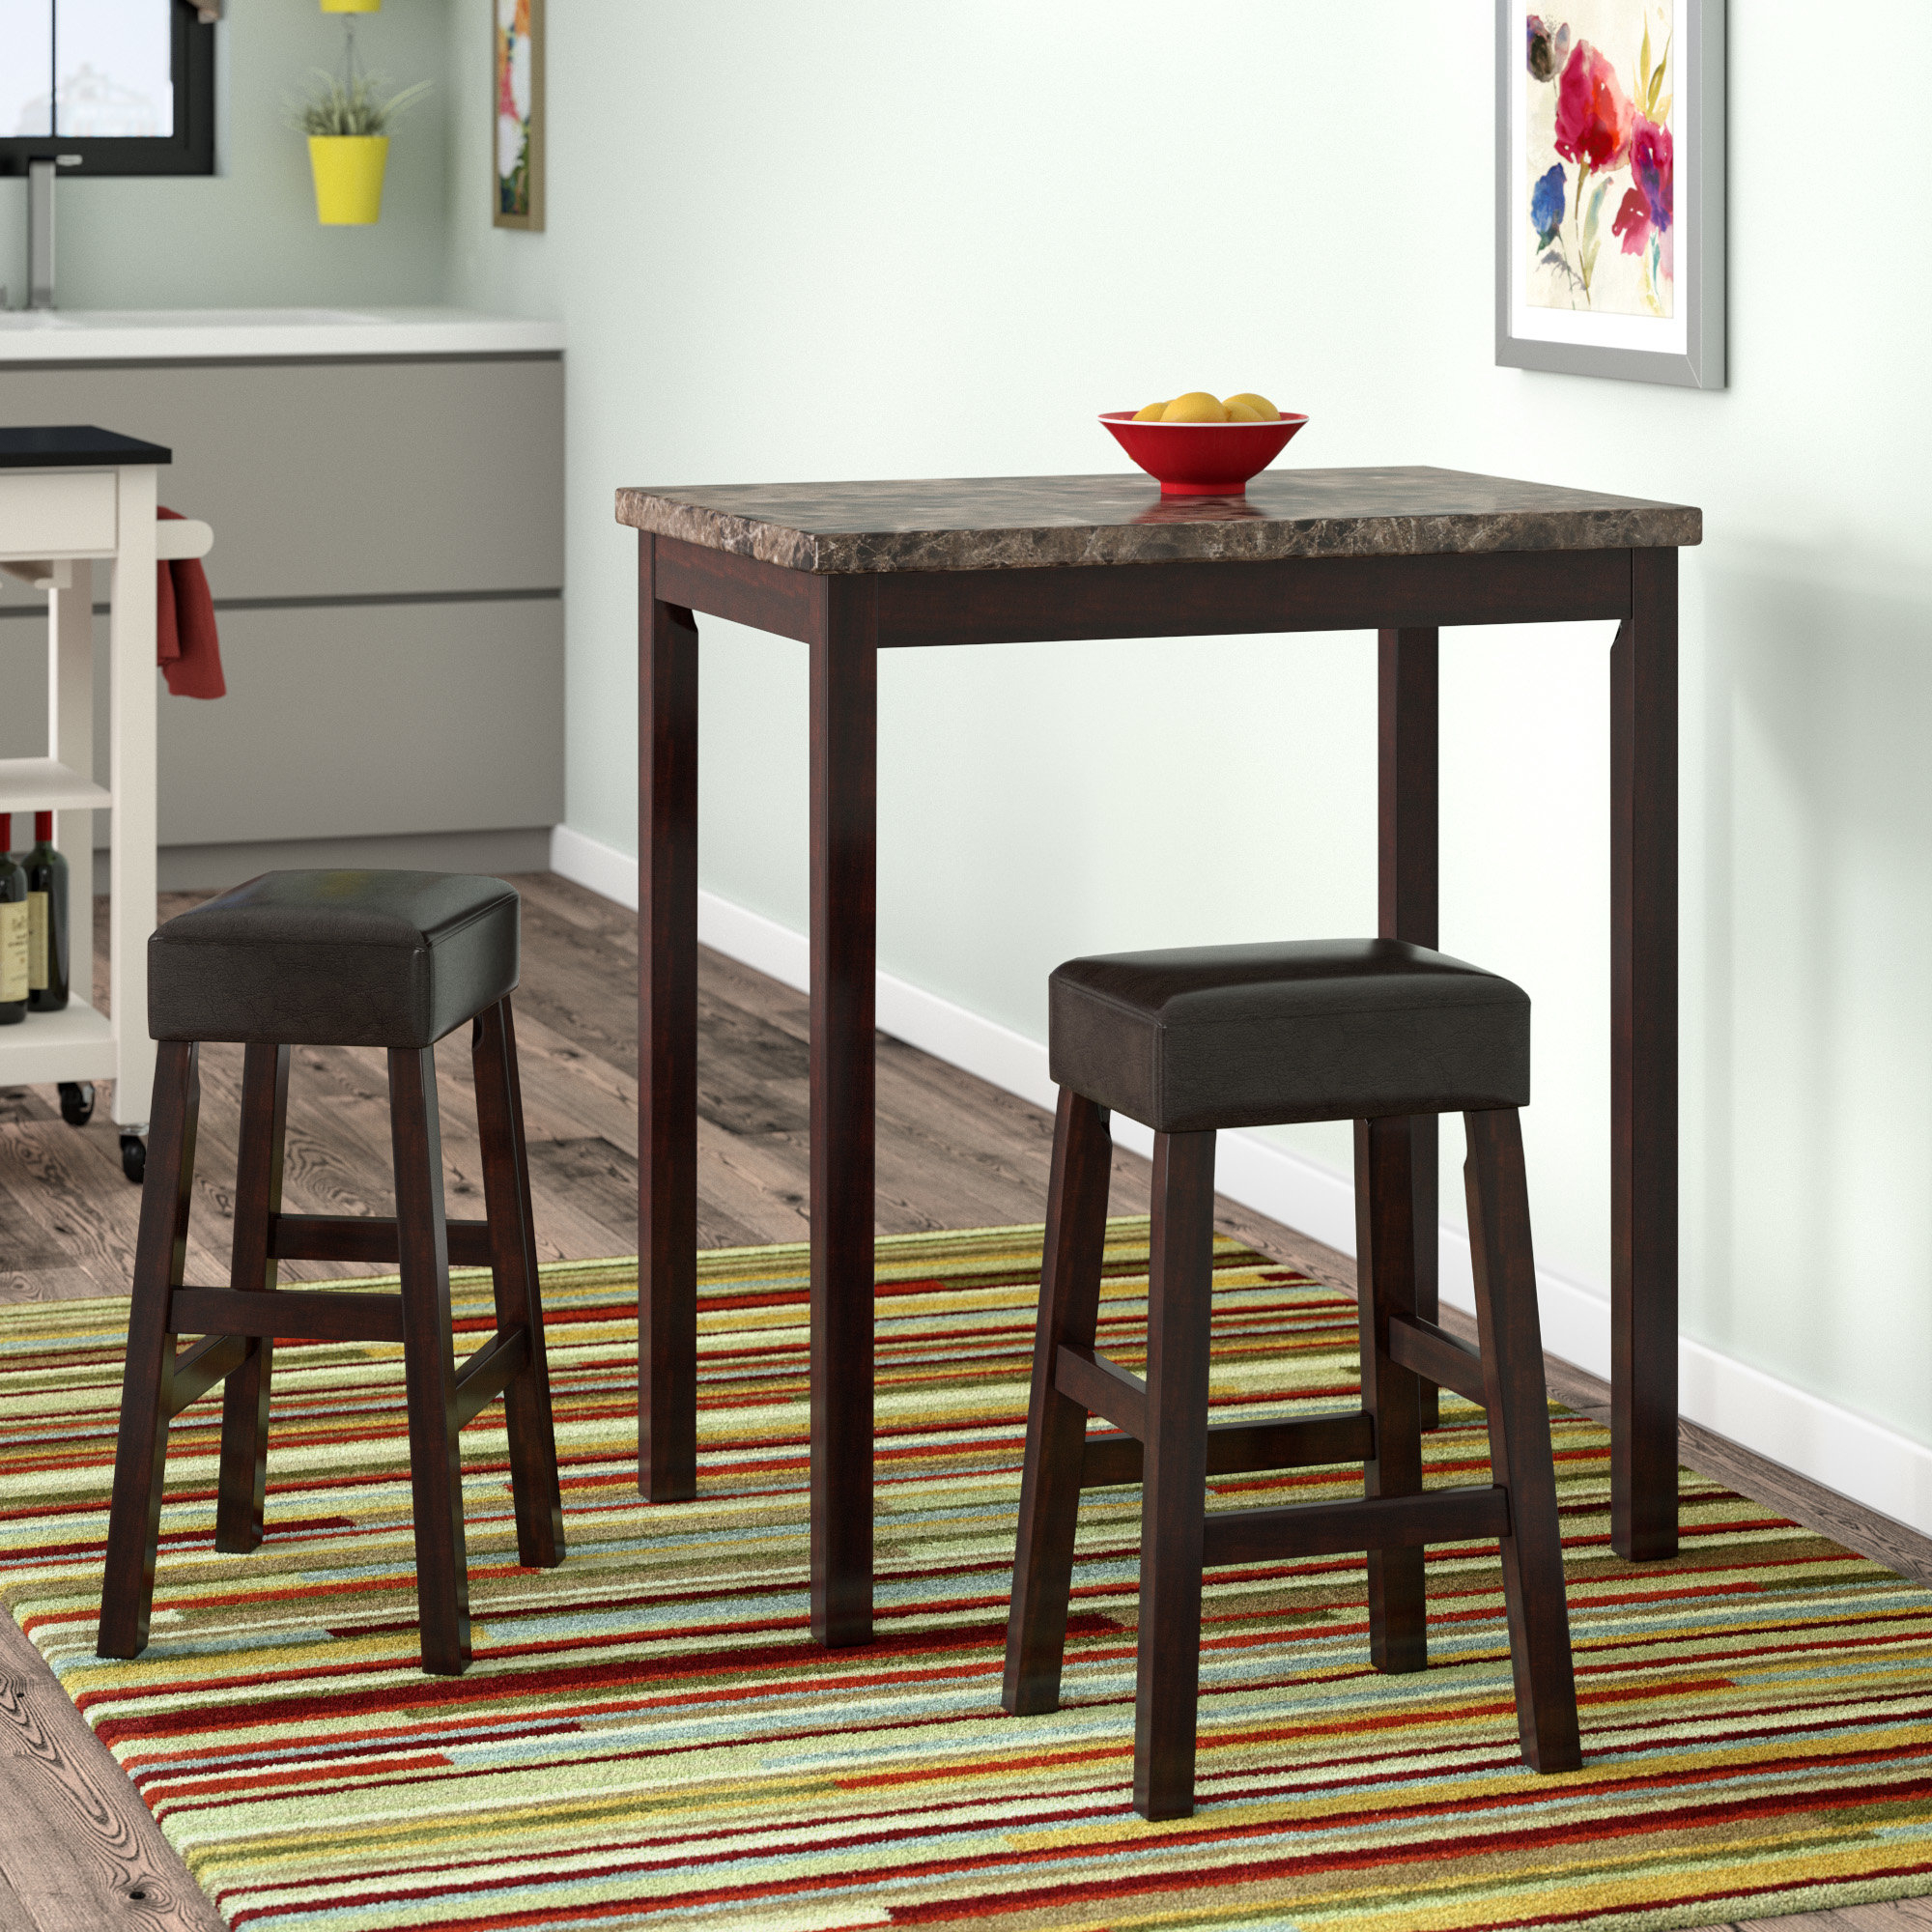 Wayfair With Regard To Askern 3 Piece Counter Height Dining Sets (Set Of 3) (View 4 of 25)